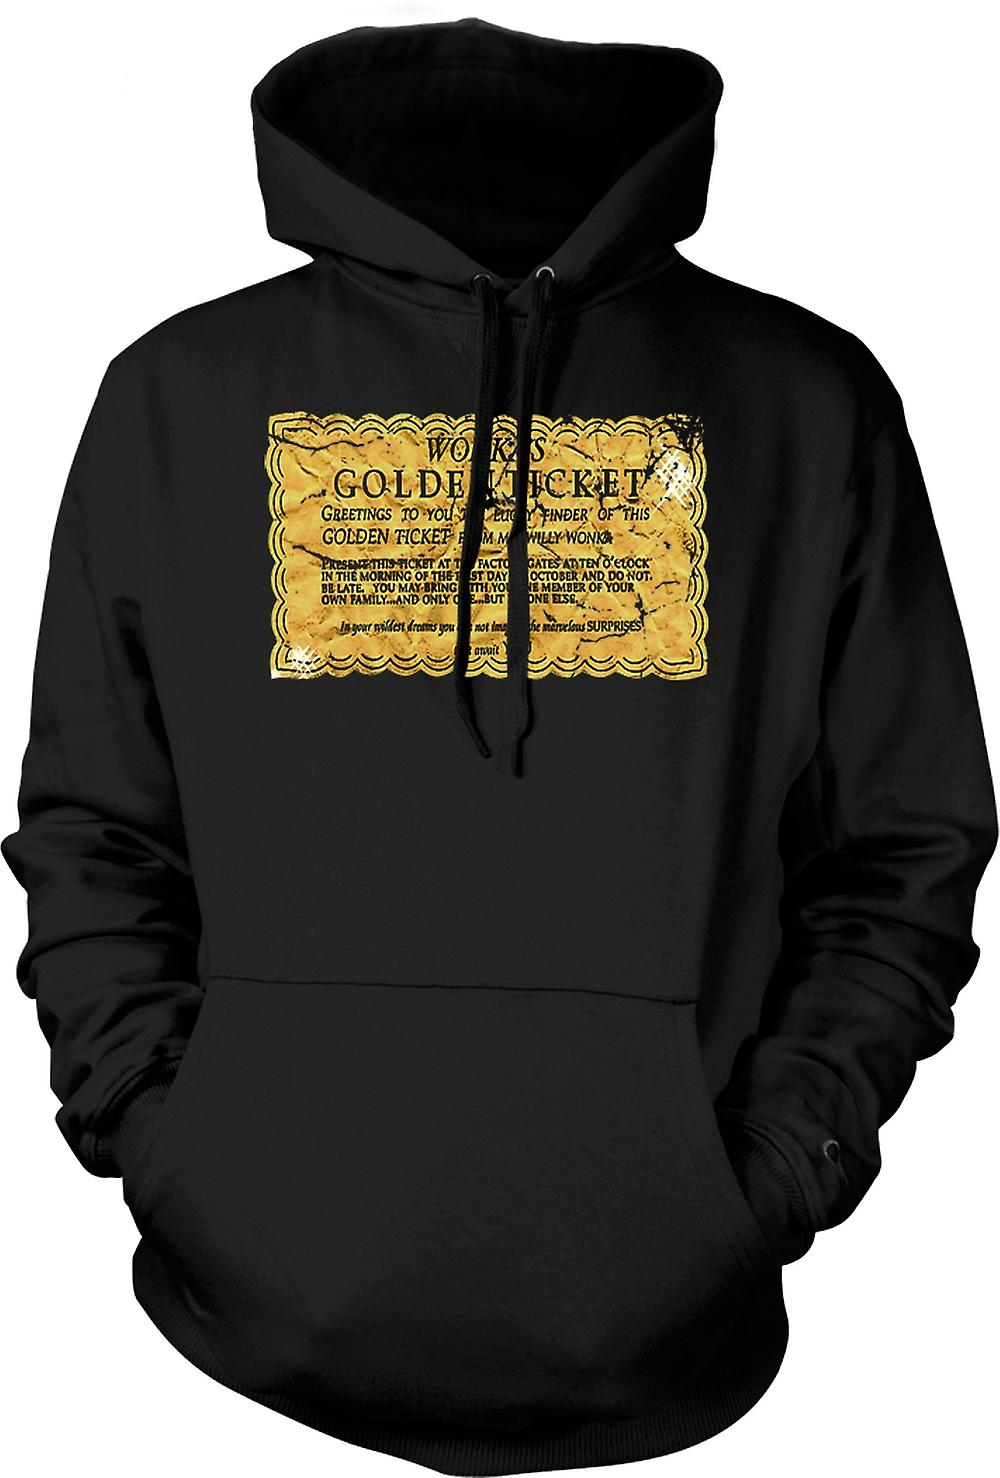 Kids Hoodie - Willy Wonka Golden Ticket - Funny